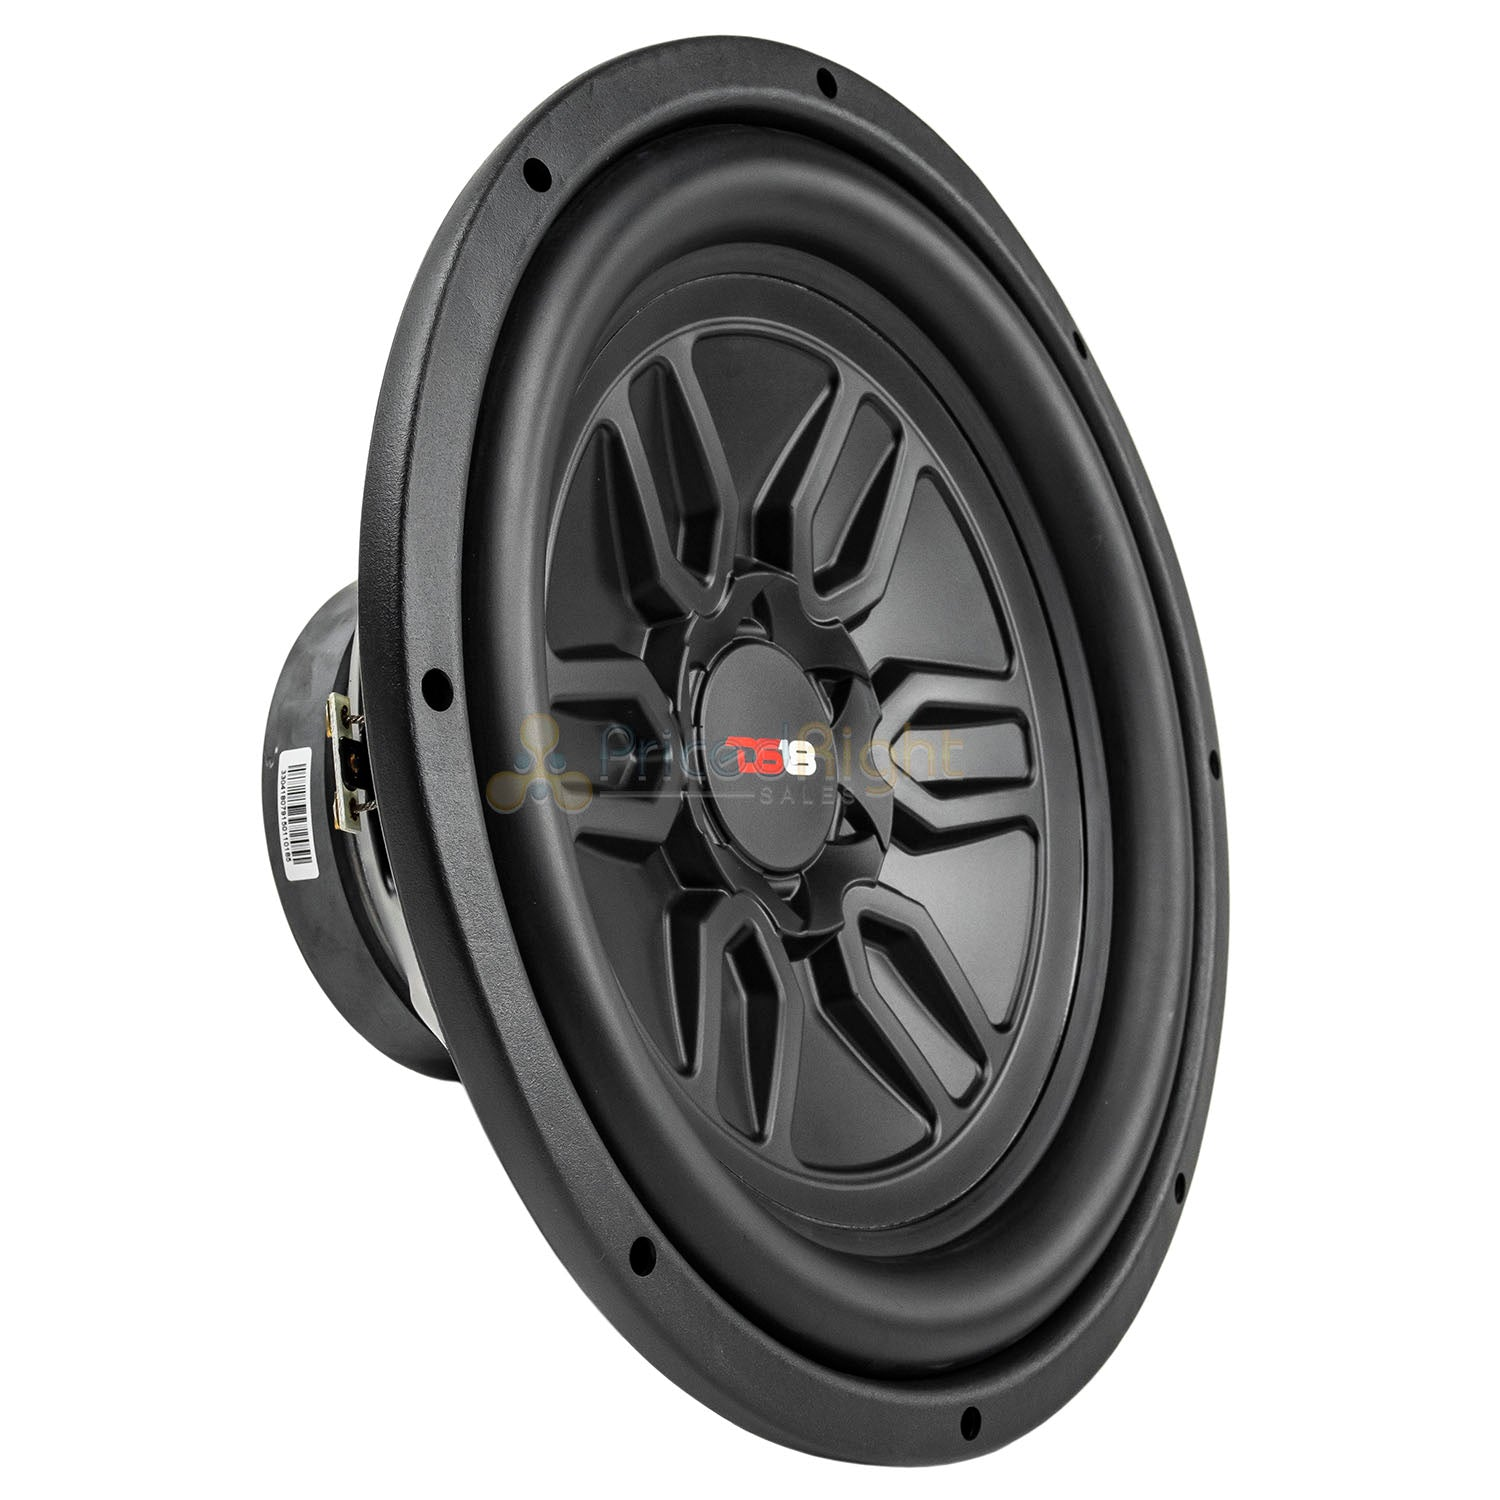 "DS18 SLC-MD12.4D 12"" Inch Subwoofers 1000 Watts Max Power Dual 4 Ohm Sub 2 Pack"